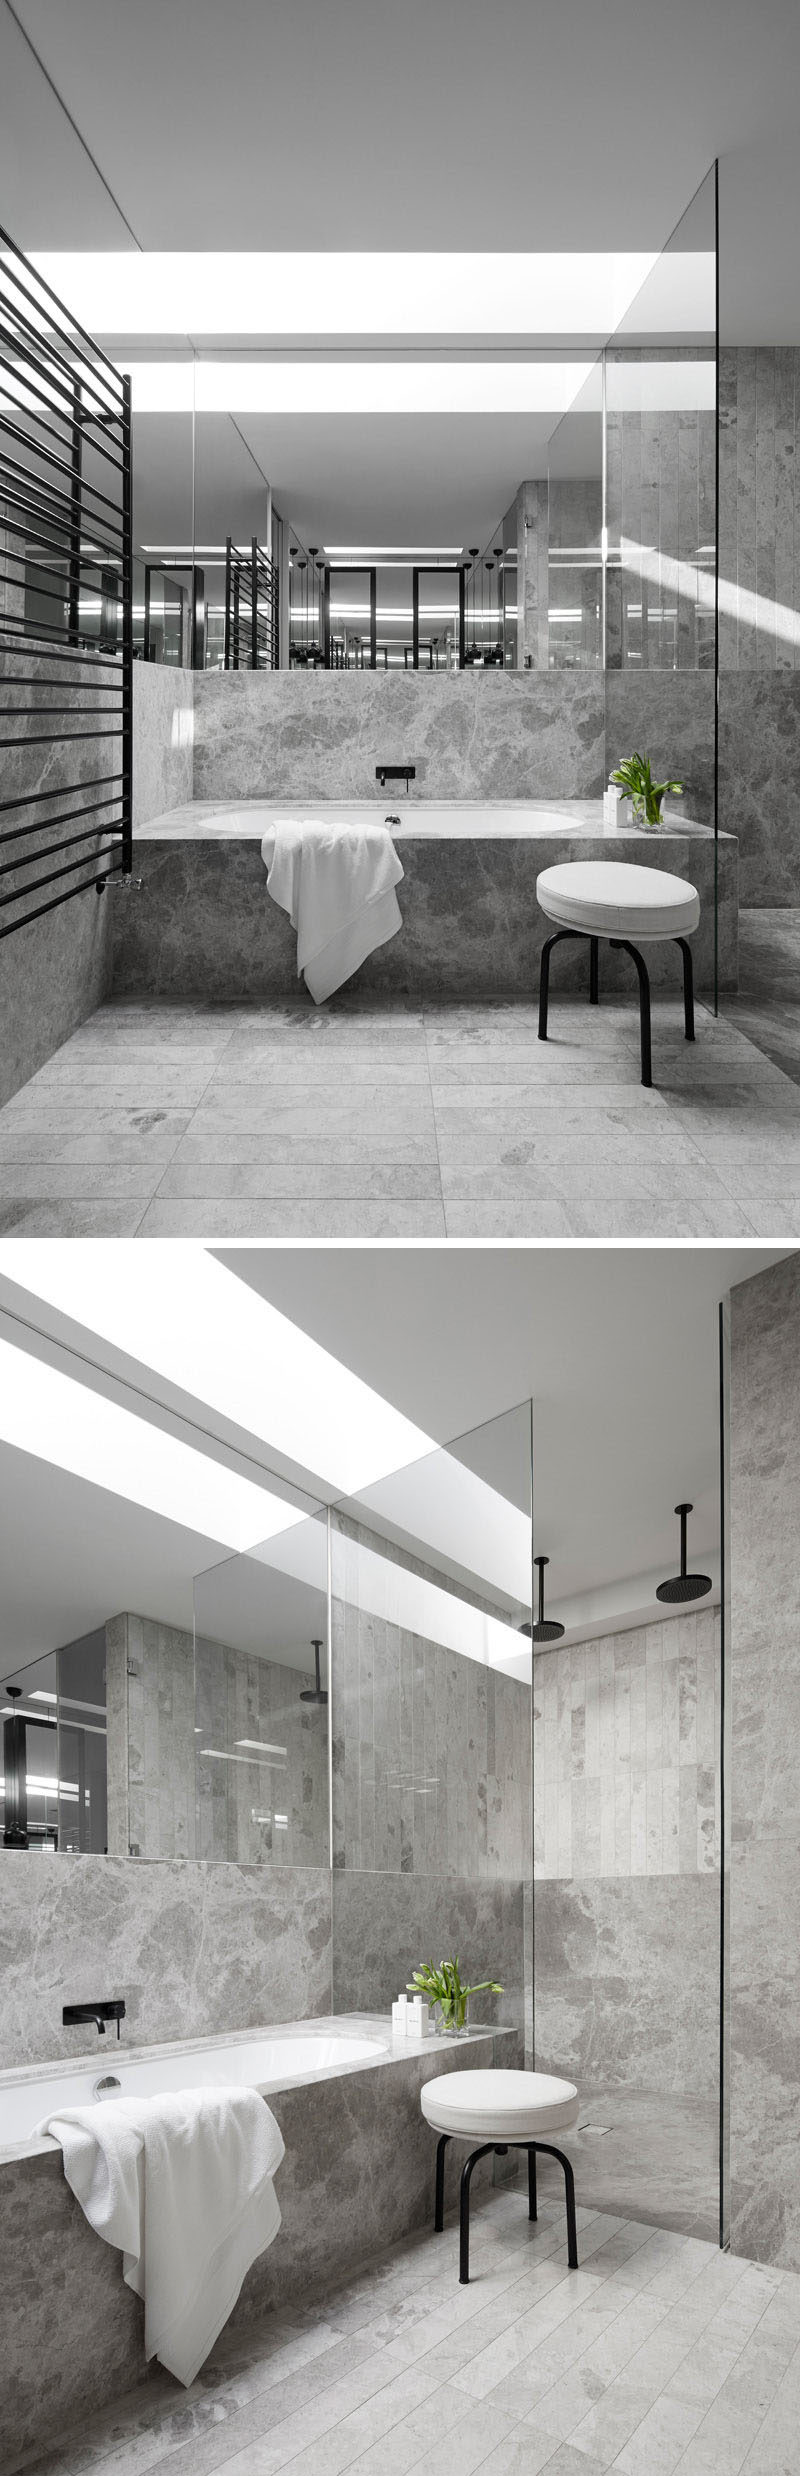 Bathroom Design Idea - 5 Ideas For Adding Marble To Your Bathroom